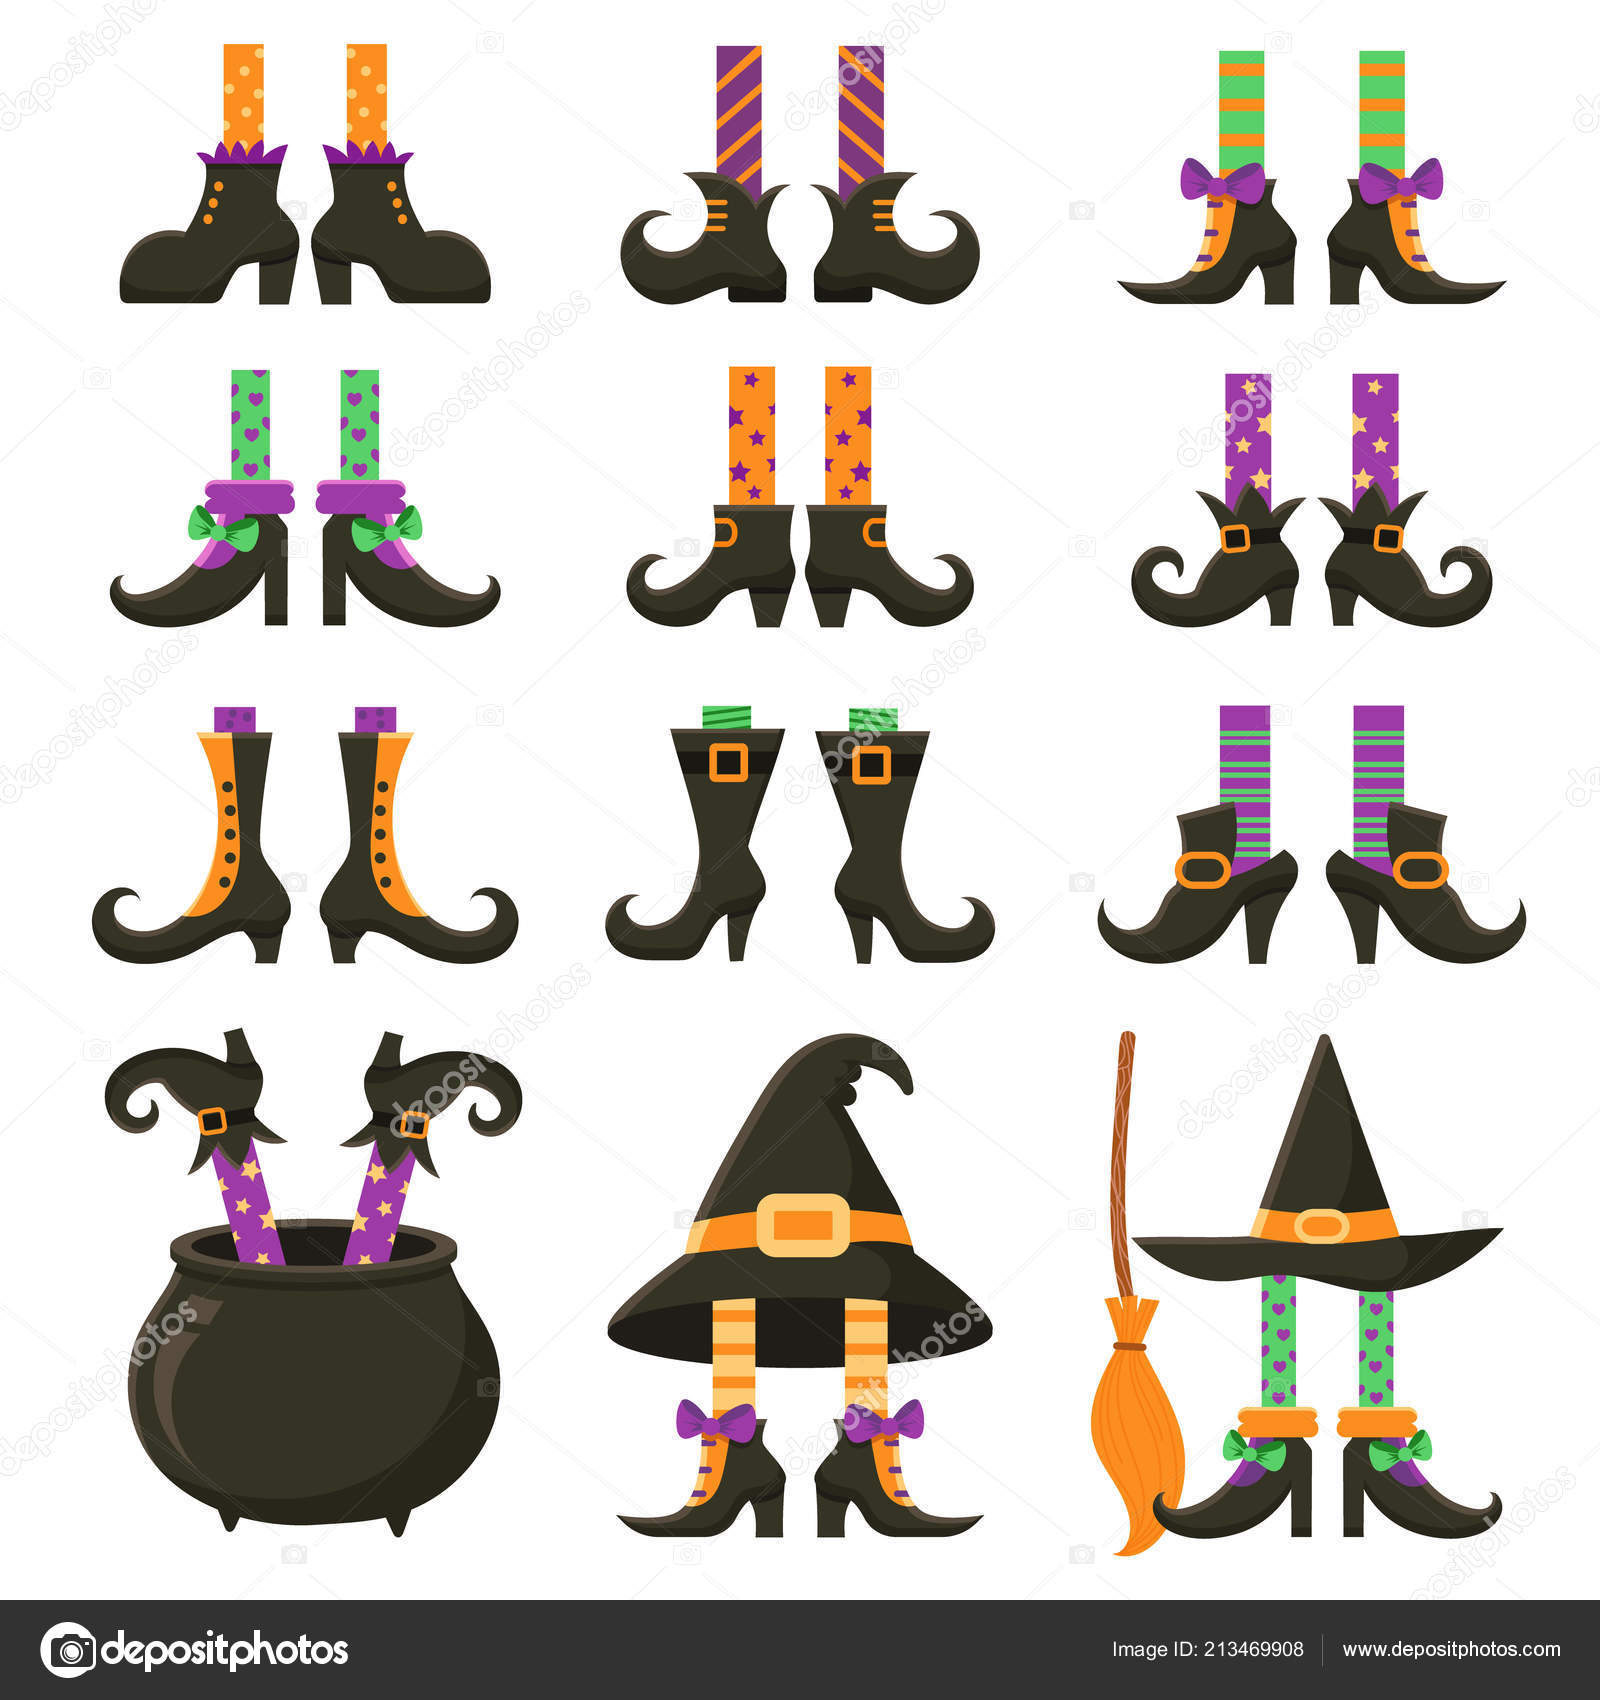 Halloween witches leg stockings and striped dress socks with broom. Vintage witchcraft cauldron and feet boots for party invitation card, cartoon vector ...